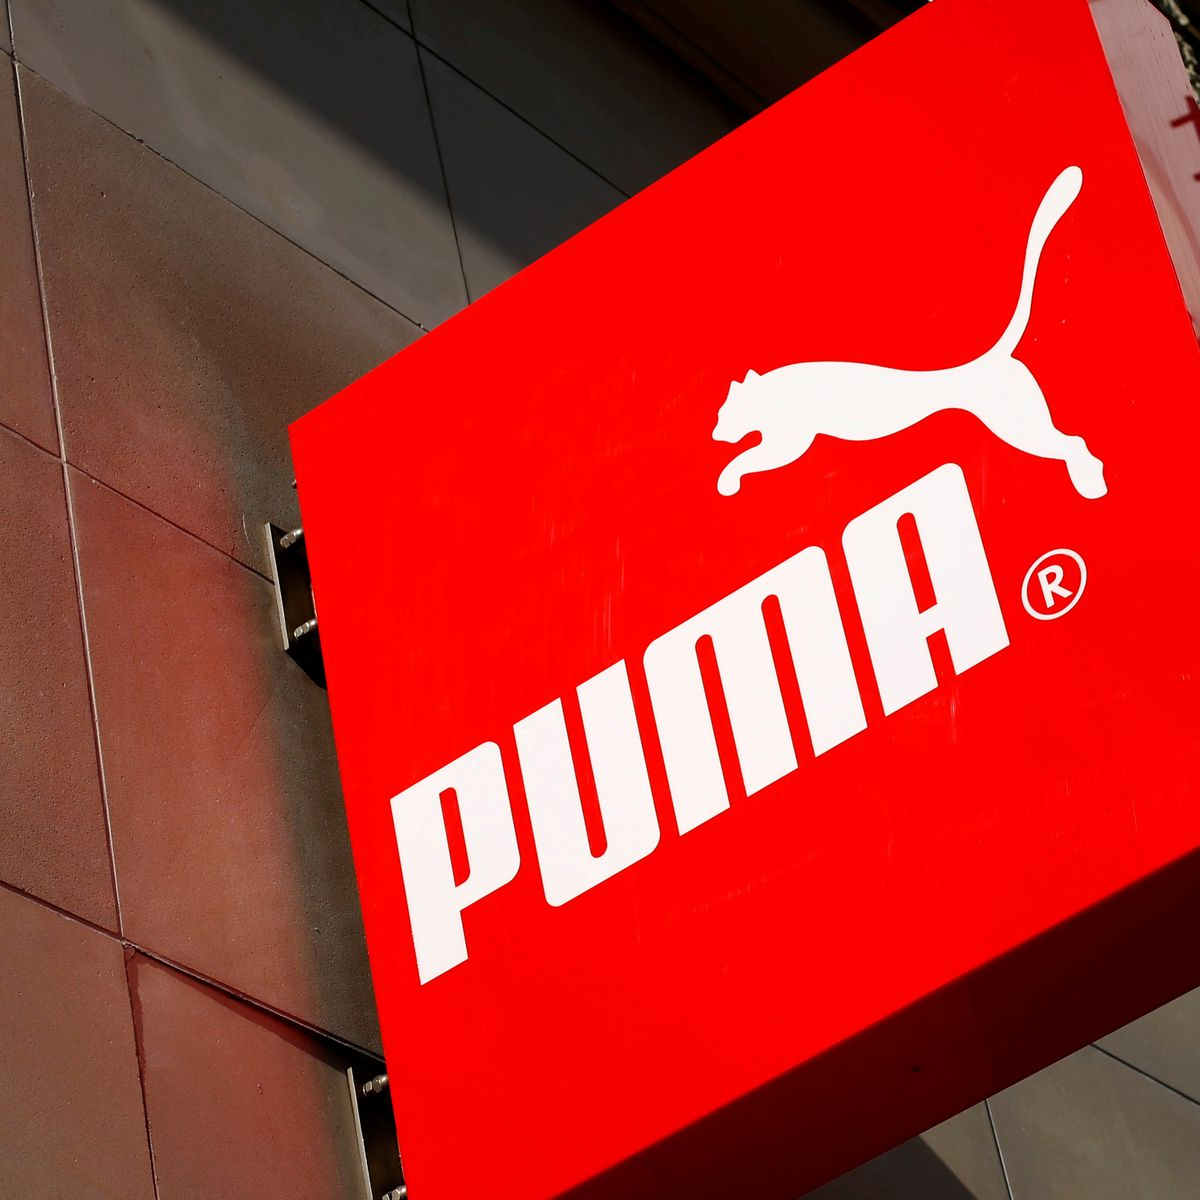 Puma sees sales hit from China backlash and freight delays   Reuters